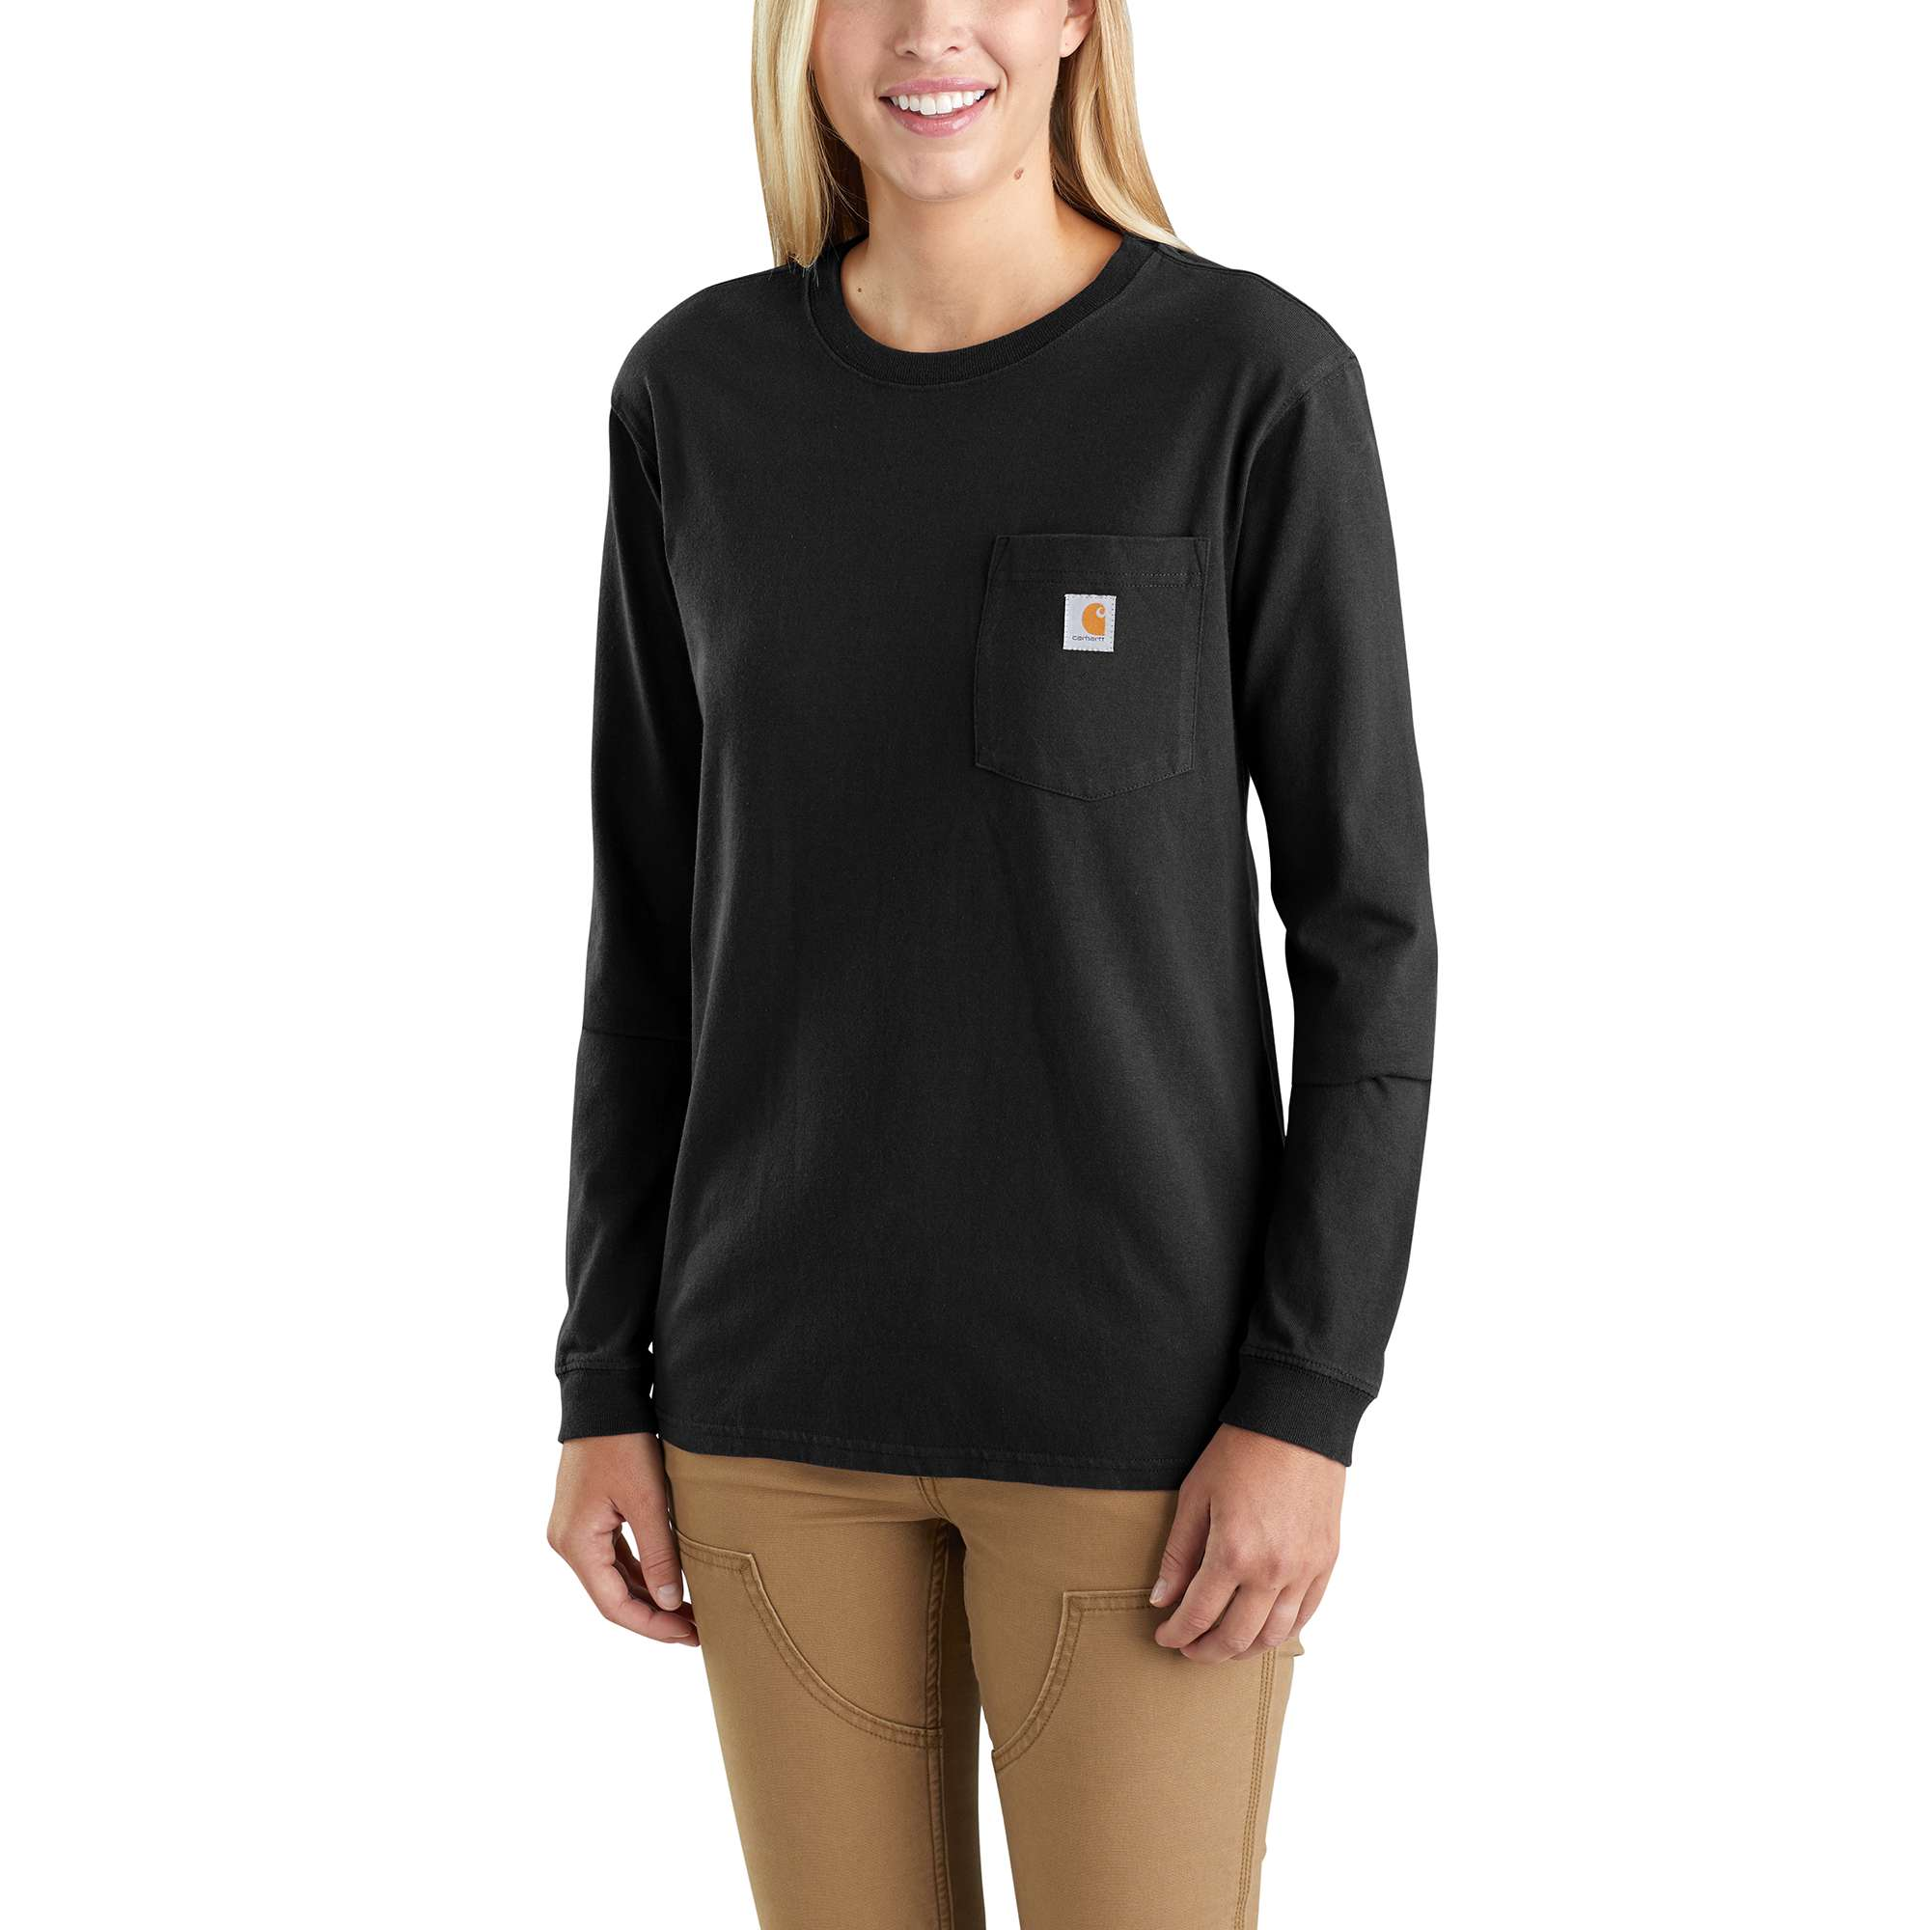 Carhartt WK126 Workwear Pocket Long-Sleeve T-Shirt